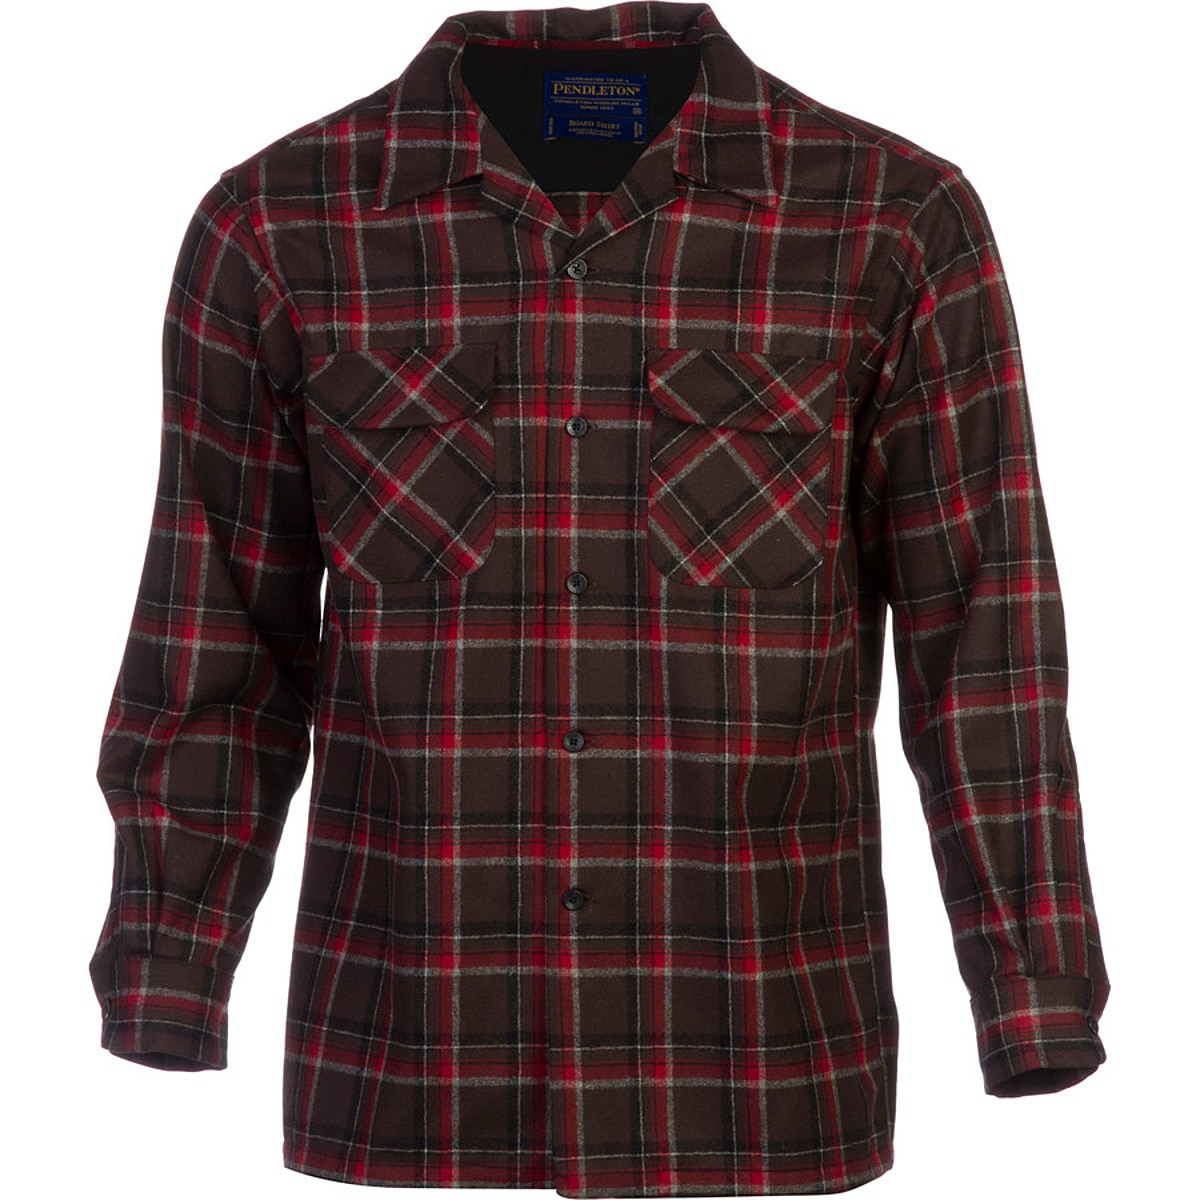 Men's Pendleton Apparel - Sheplers24/7 Customer Service · Free Shipping · Trusted Since  · Shop Our Huge Selection.